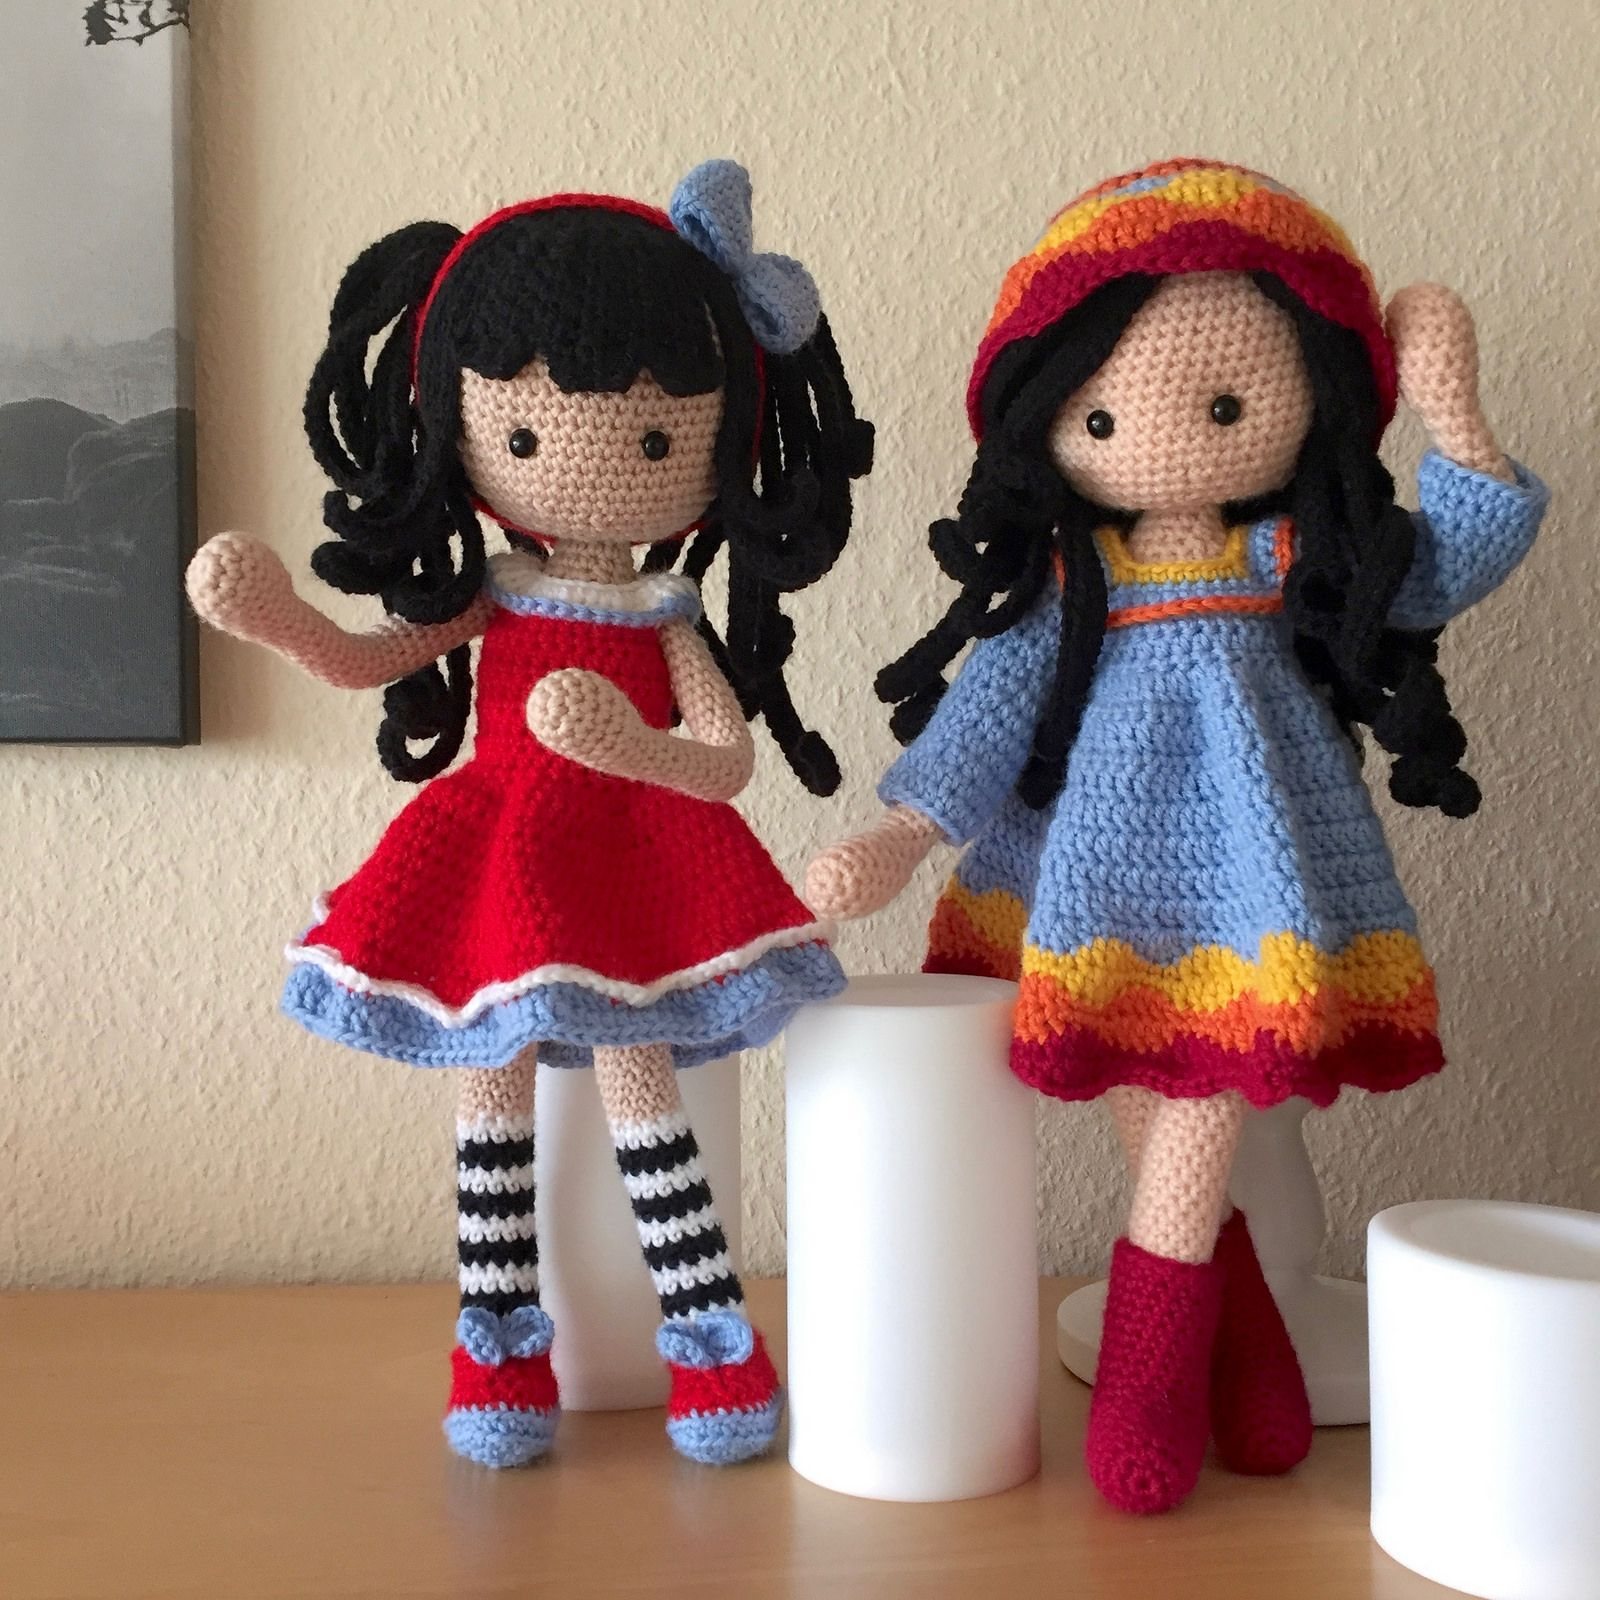 27 Taking Attention Amigurumi Doll Pattern Ideas - Page 9 of 27 ... | 1600x1600